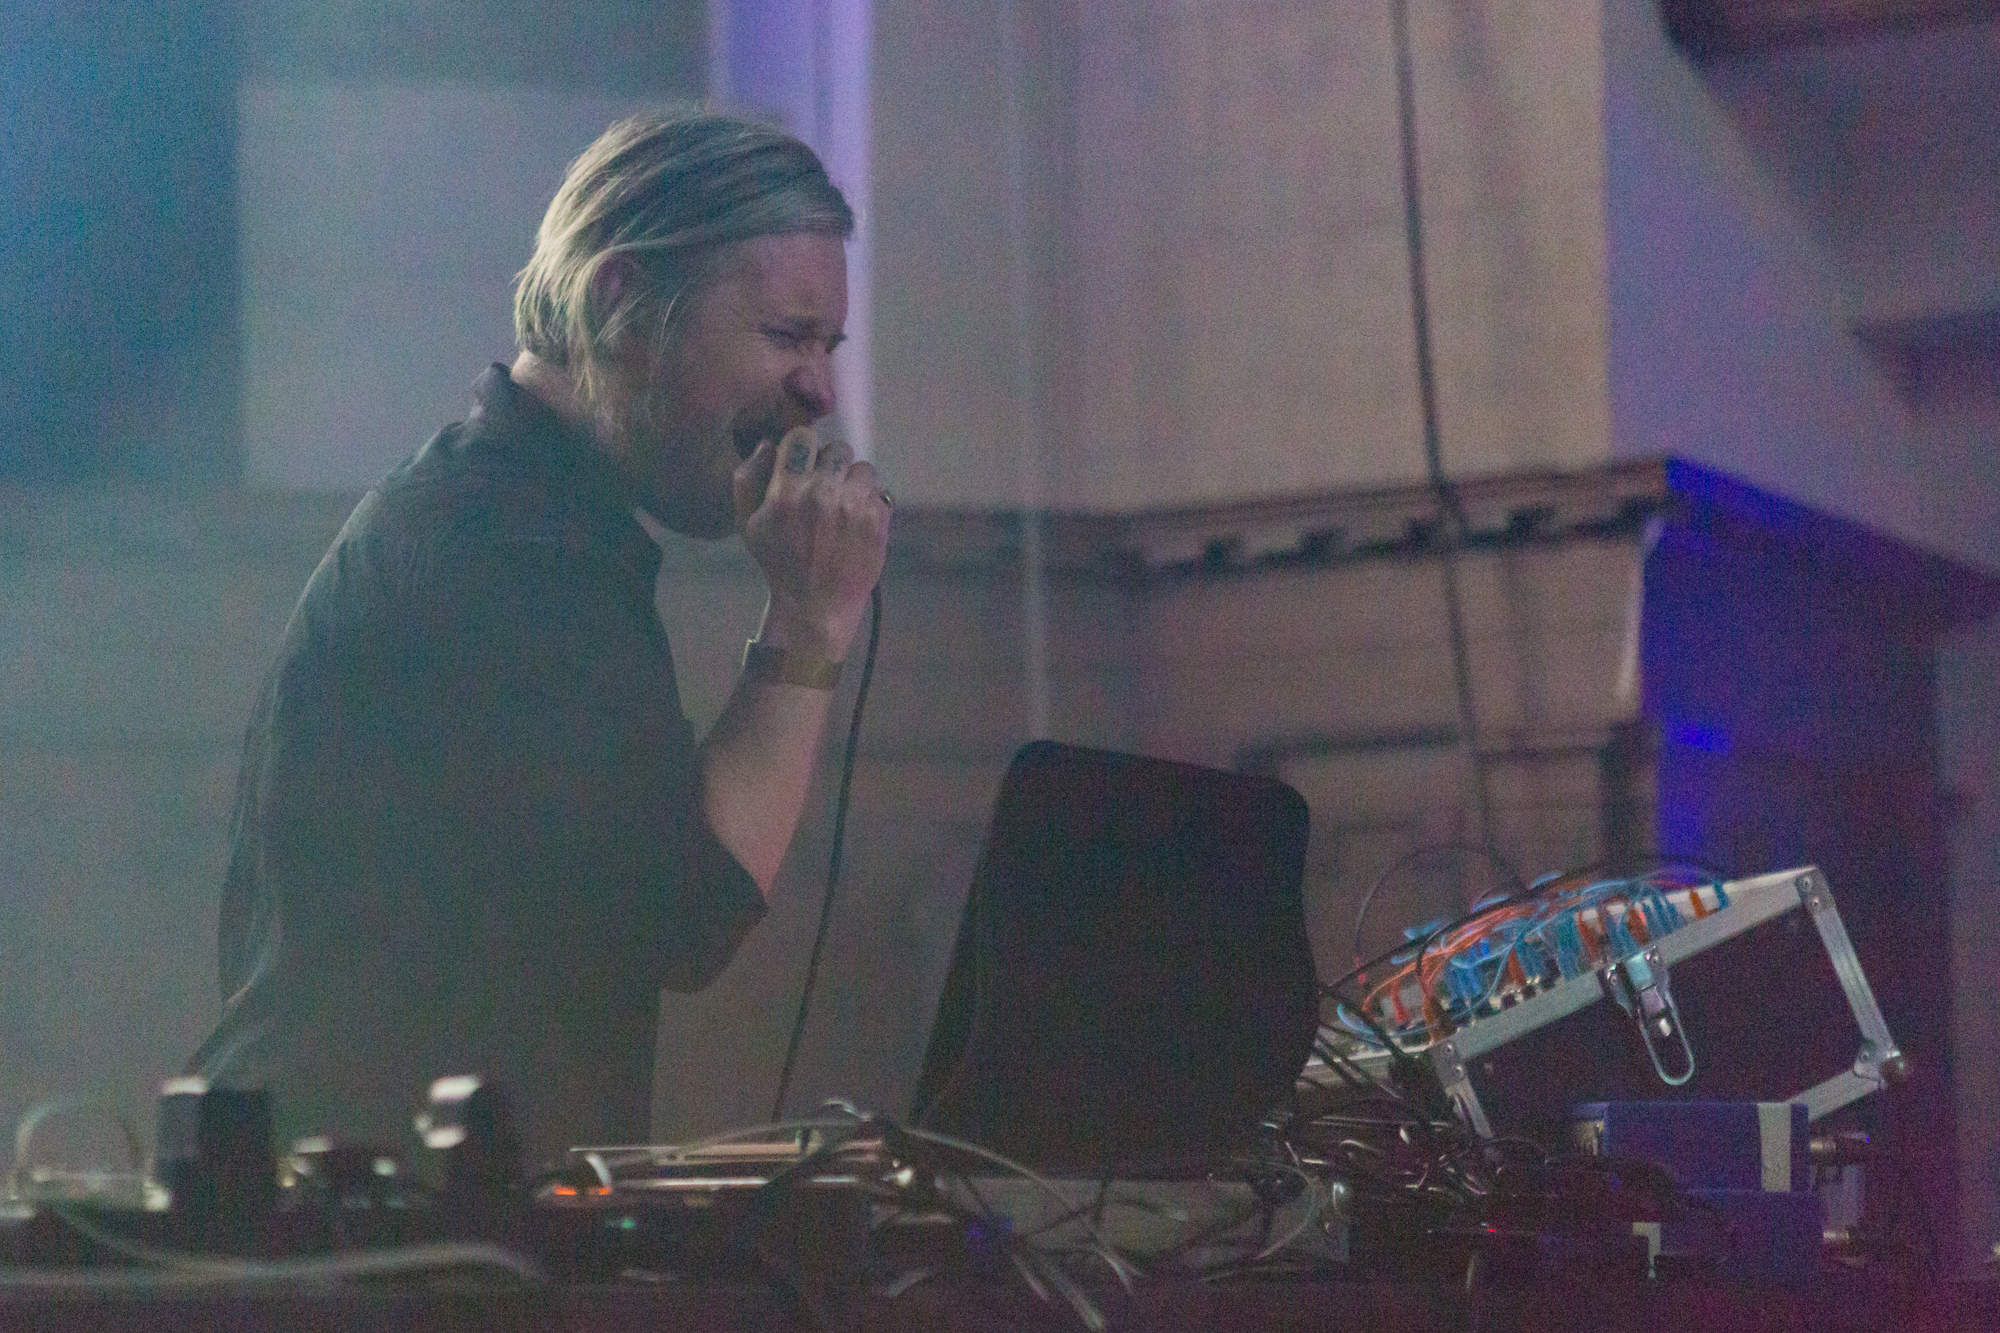 BLANCK MASS - Photography by Brendan Waters